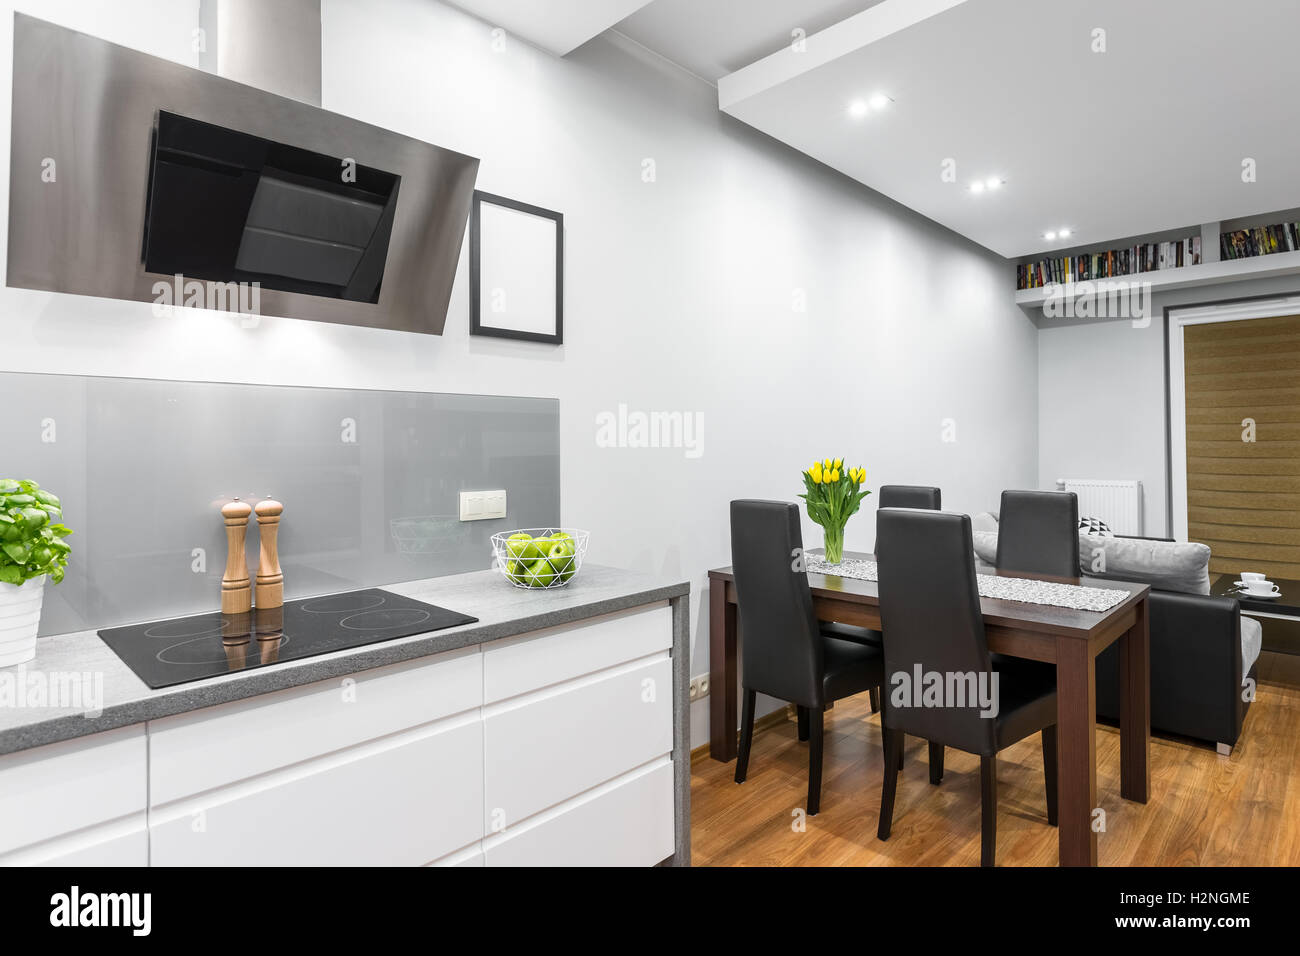 Hob Set In Worktop In Stockfotos & Hob Set In Worktop In Bilder - Alamy